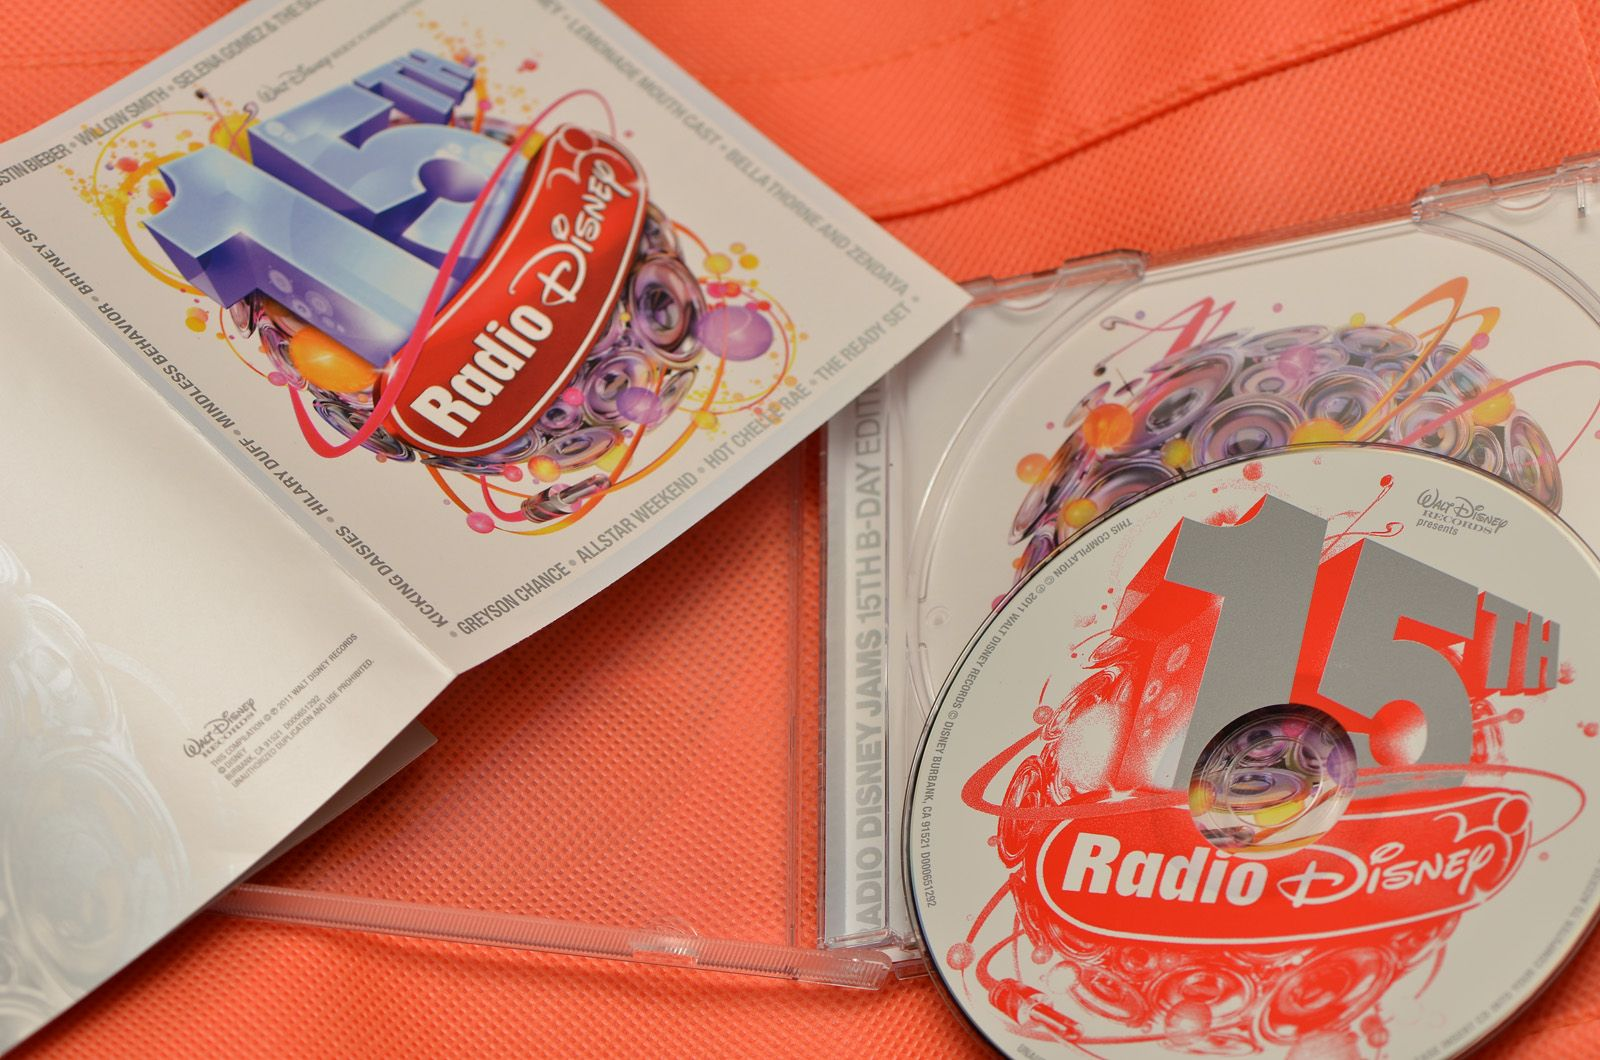 VA - Radio Disney Jams 15th B-Day Edition 2011 (CD ORIGINAL)